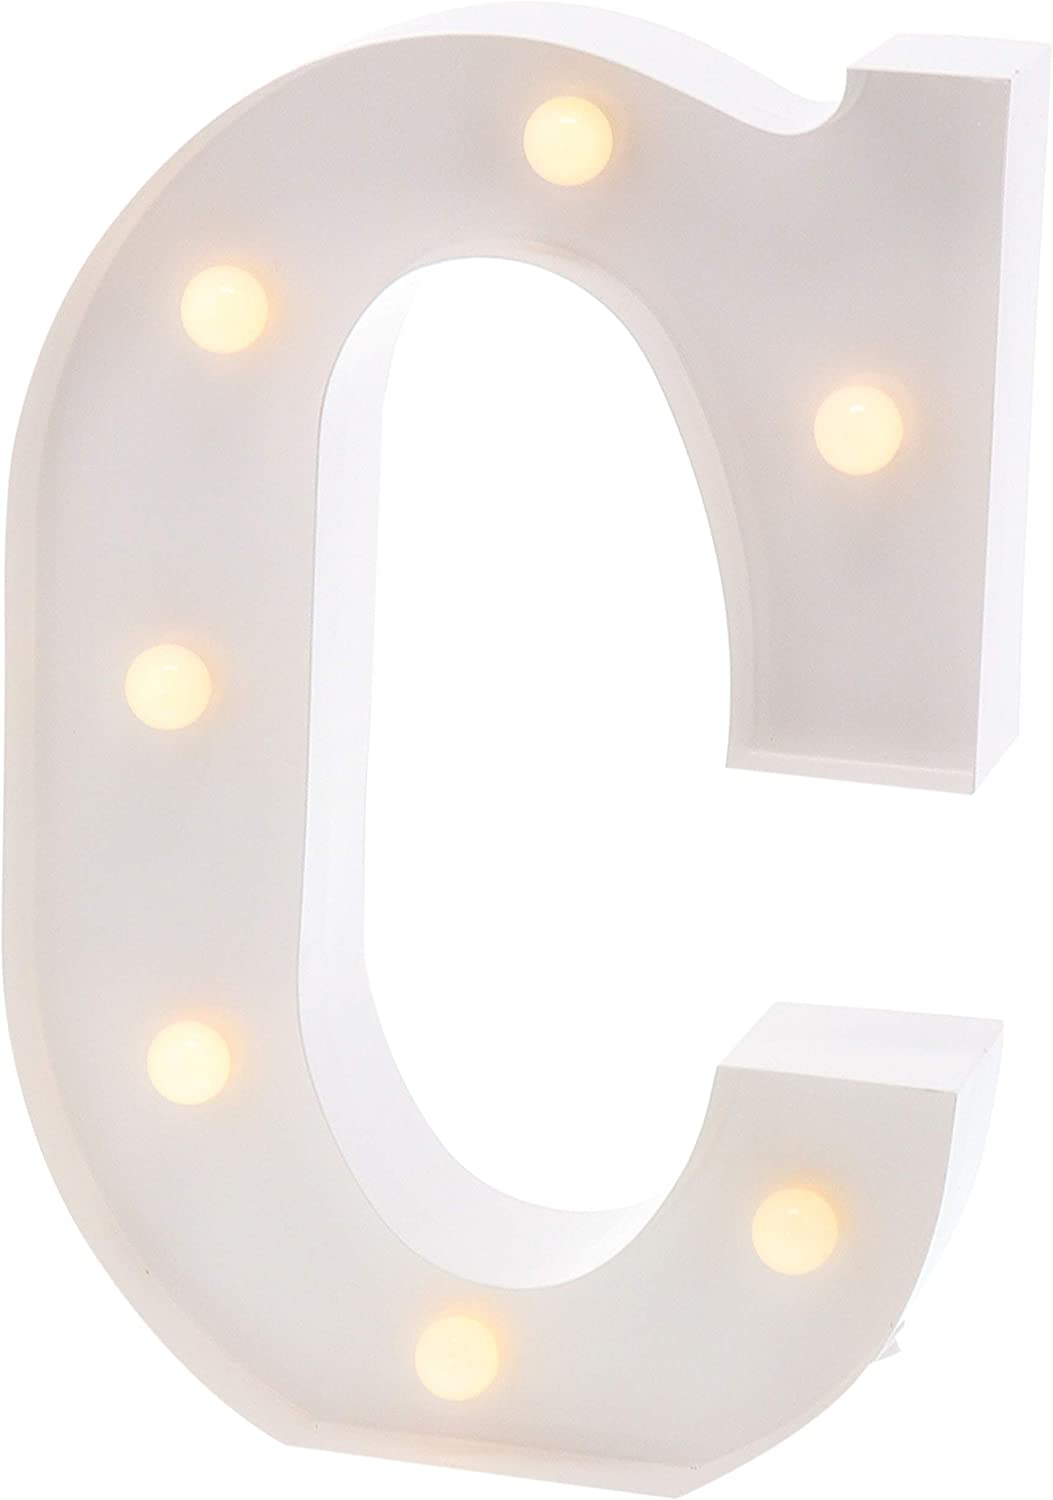 """Barnyard Designs Metal Marquee Letter Flat C Light Up Wall Initial Wedding, Bar, Home and Nursery Letter Decoration 12"""" (White)"""